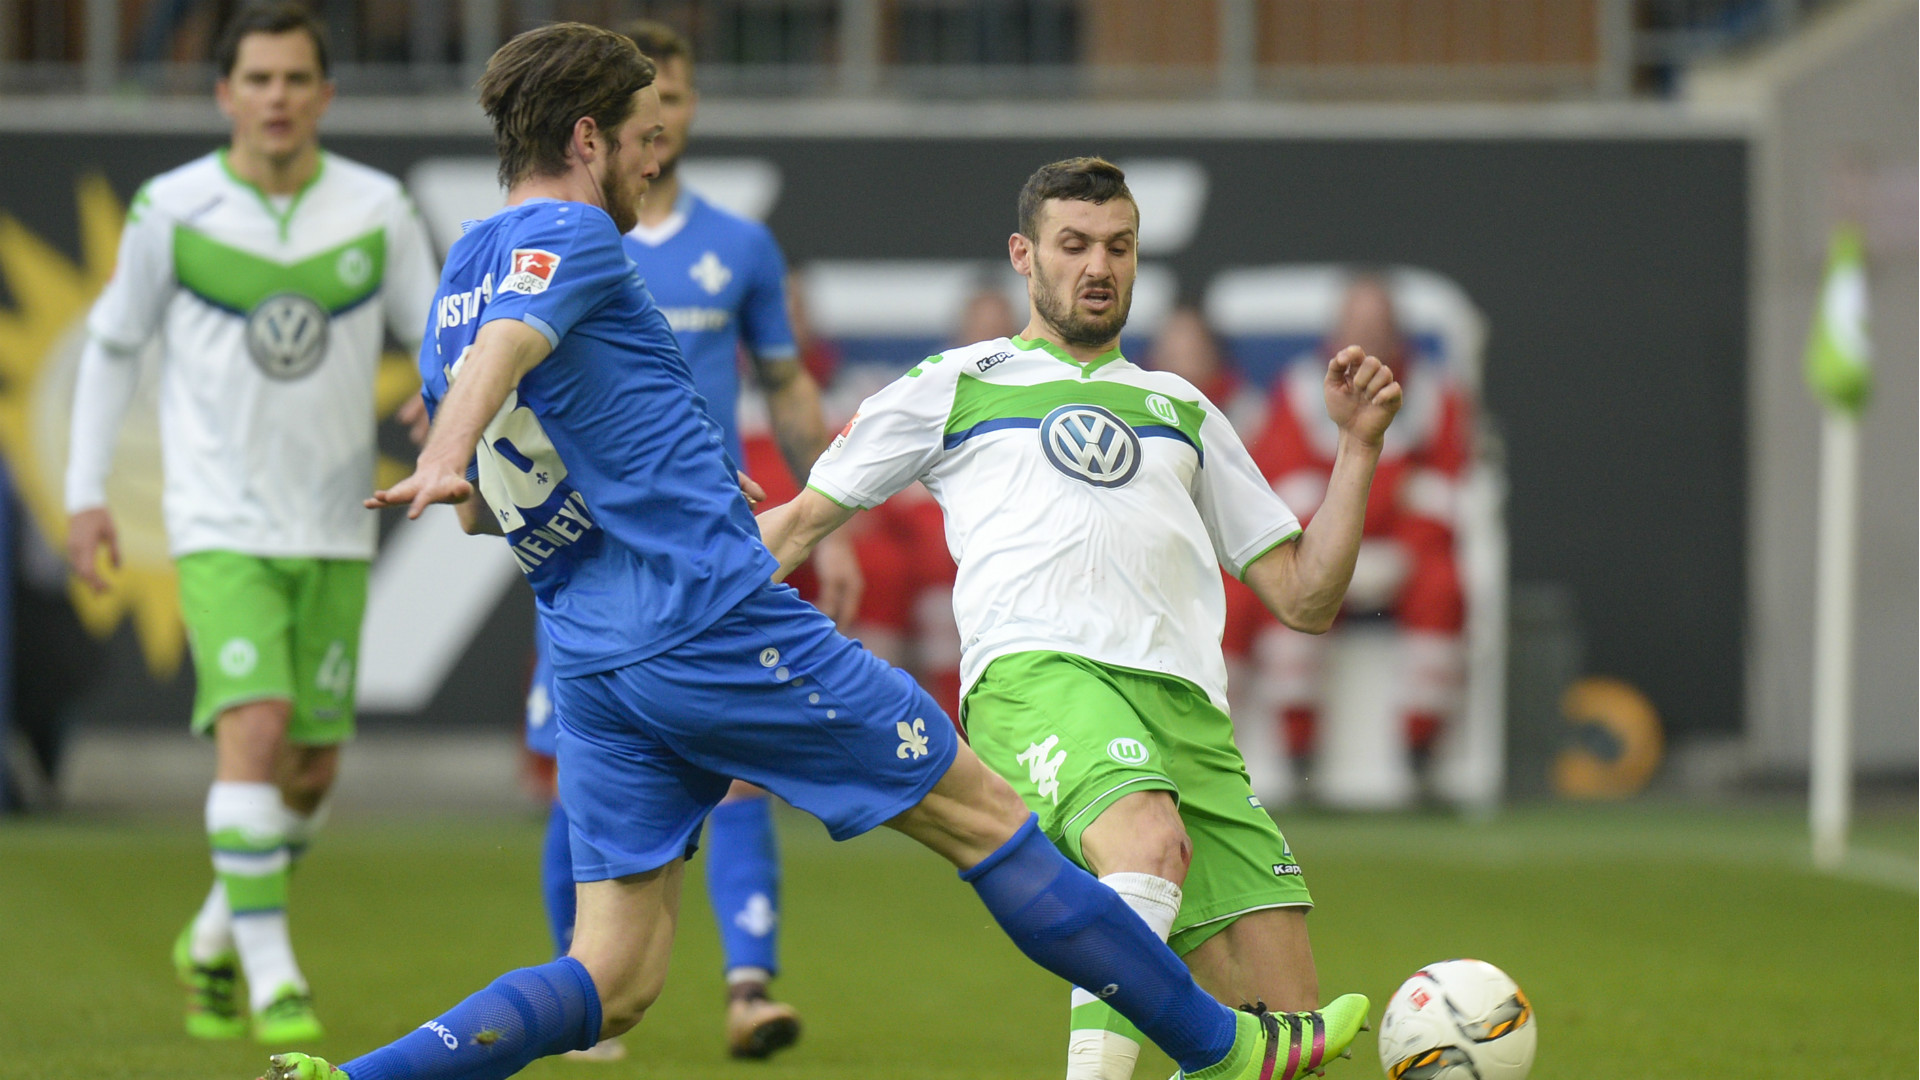 Video: Wolfsburg vs Darmstadt 98